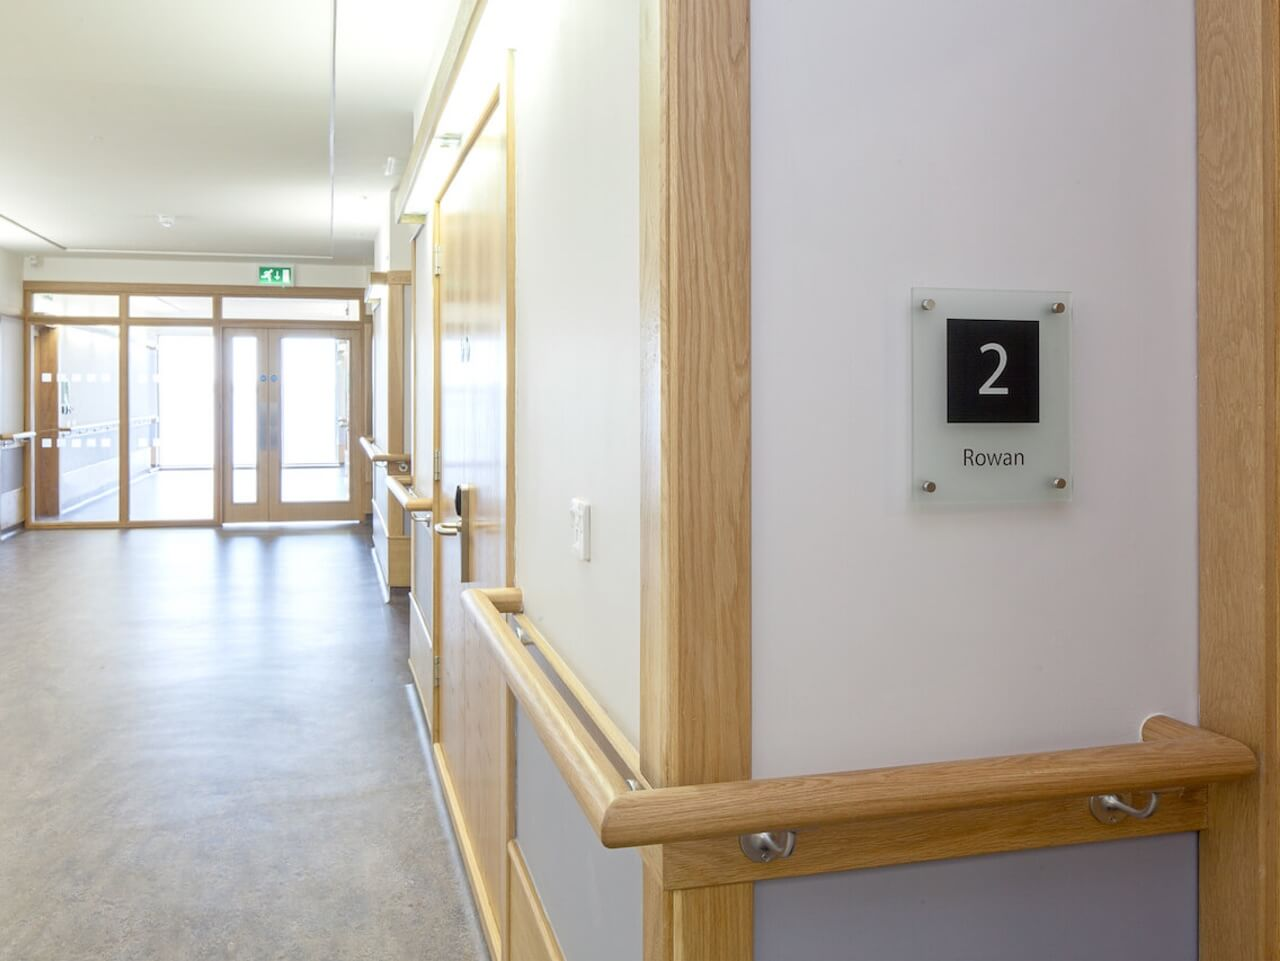 Wall mounted room signage and numbering